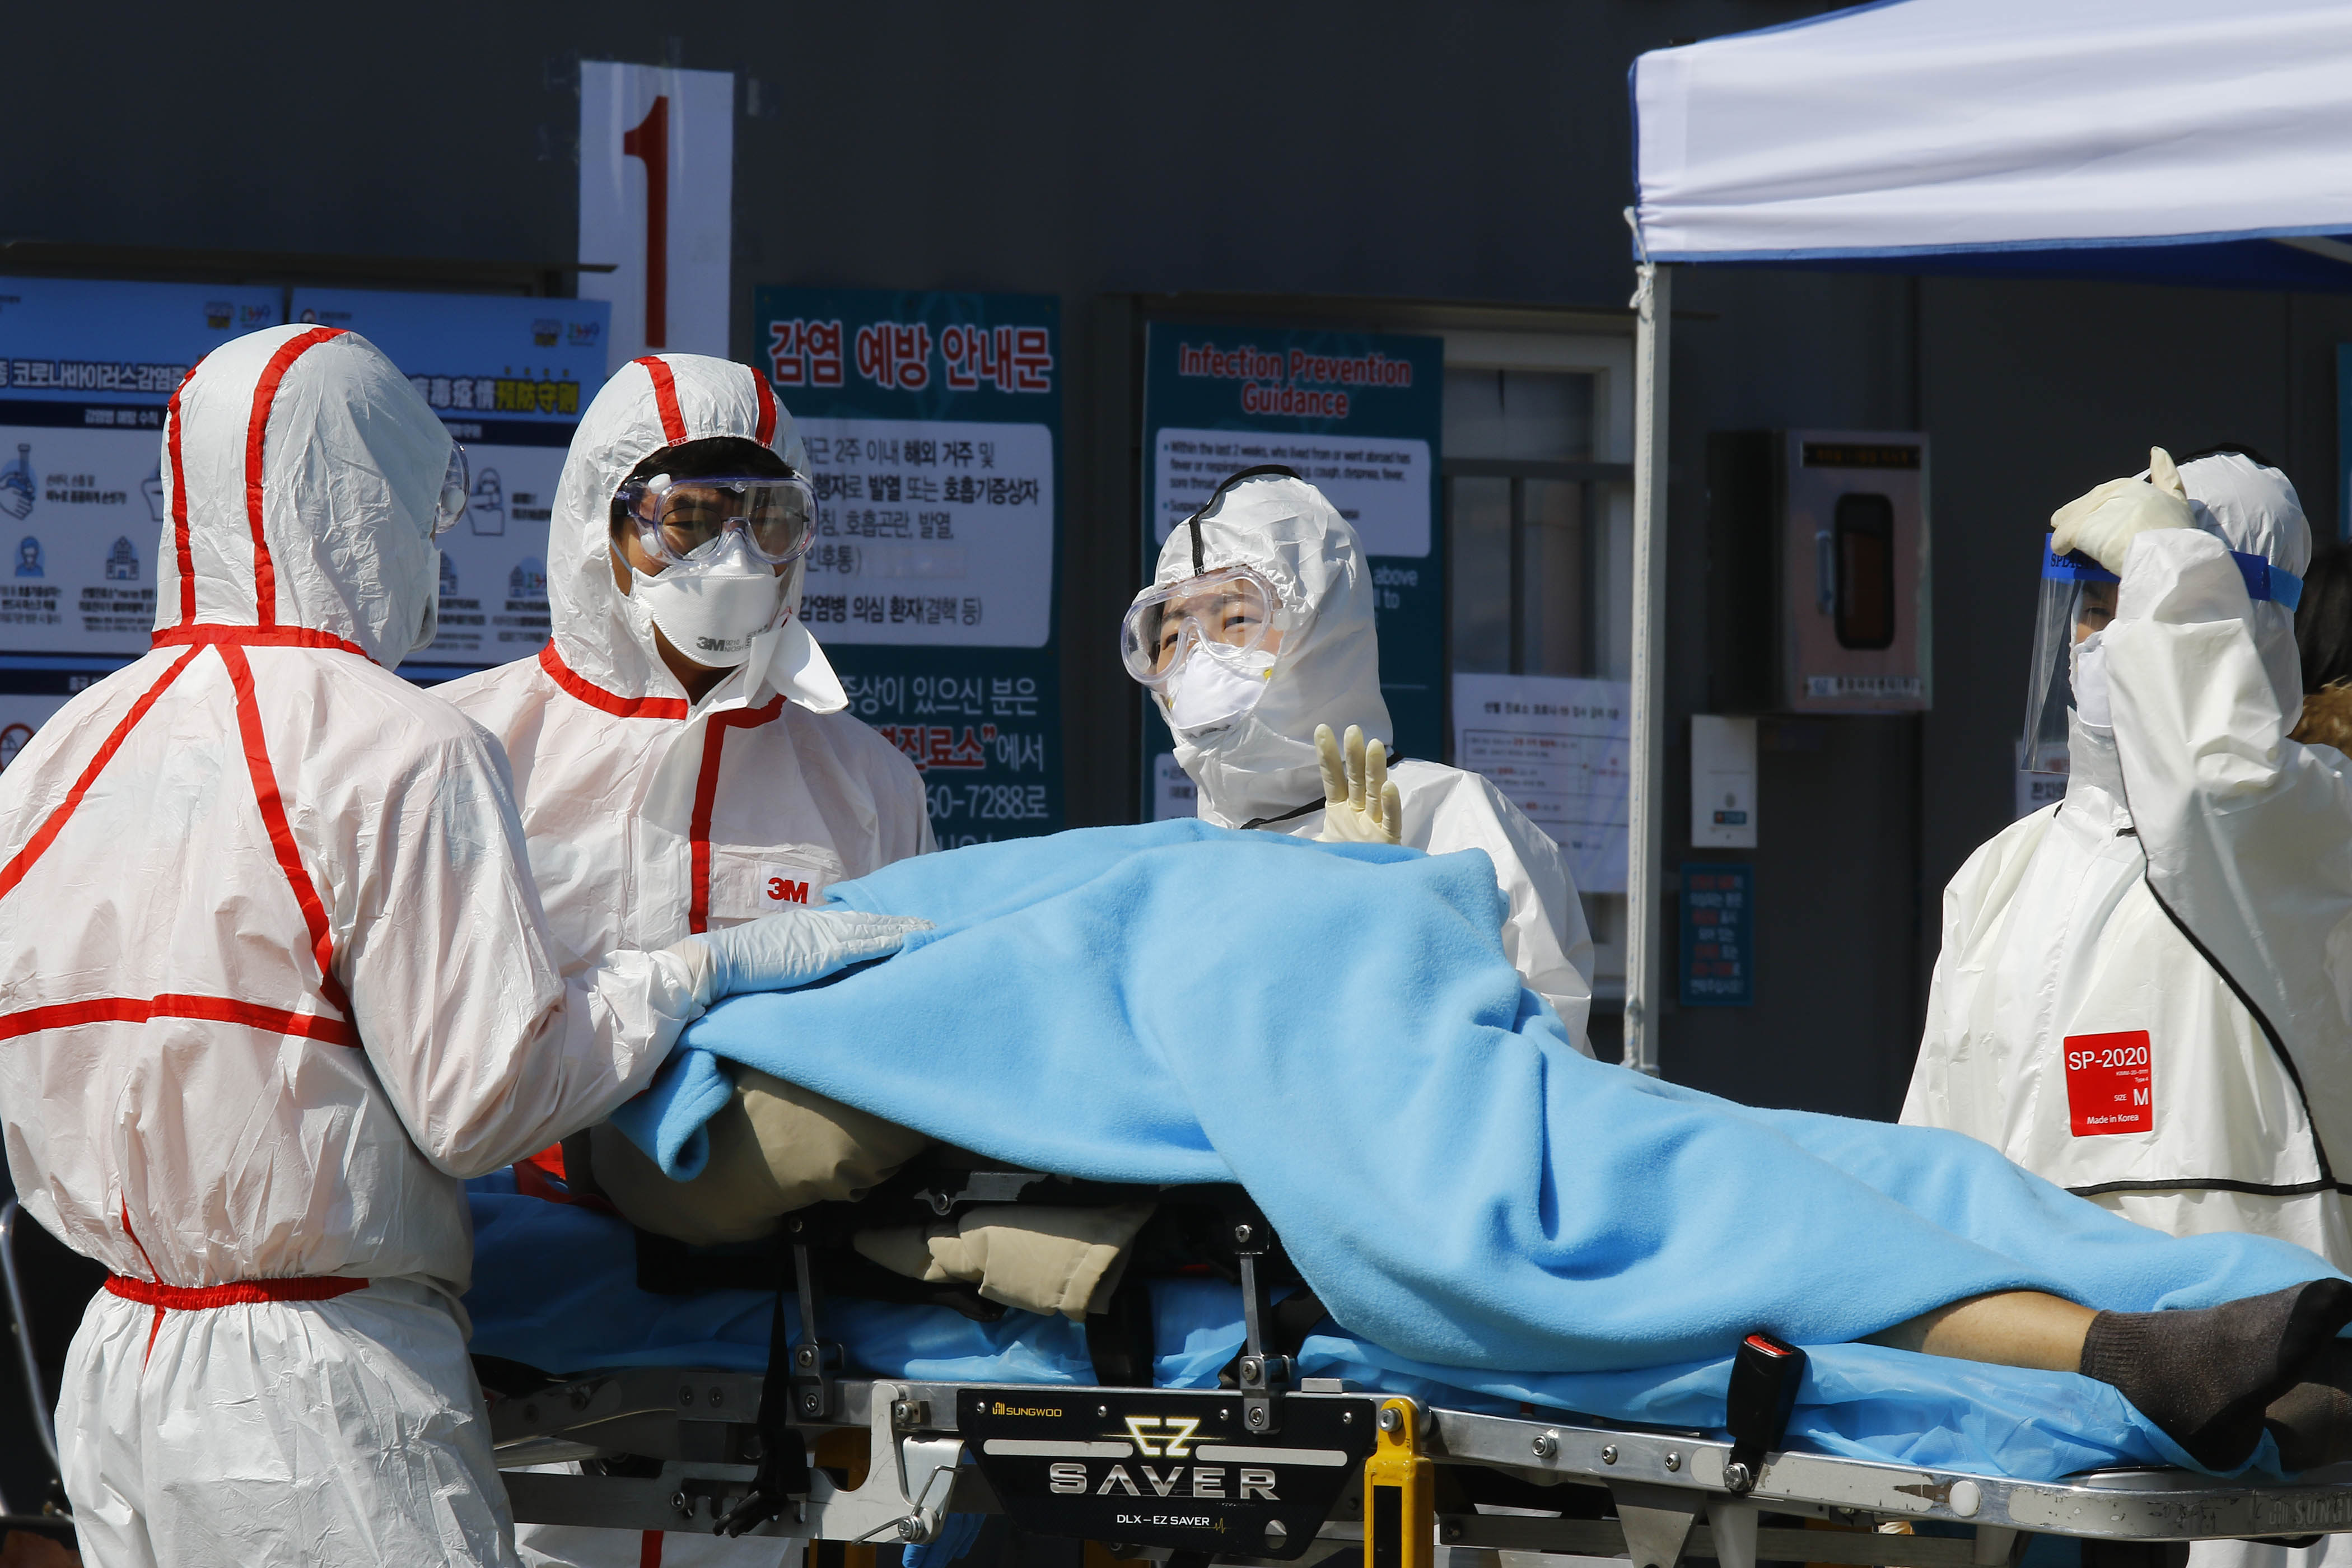 A coronavirus patient is moved at a medical center in Daegu, South Korea, on Monday.